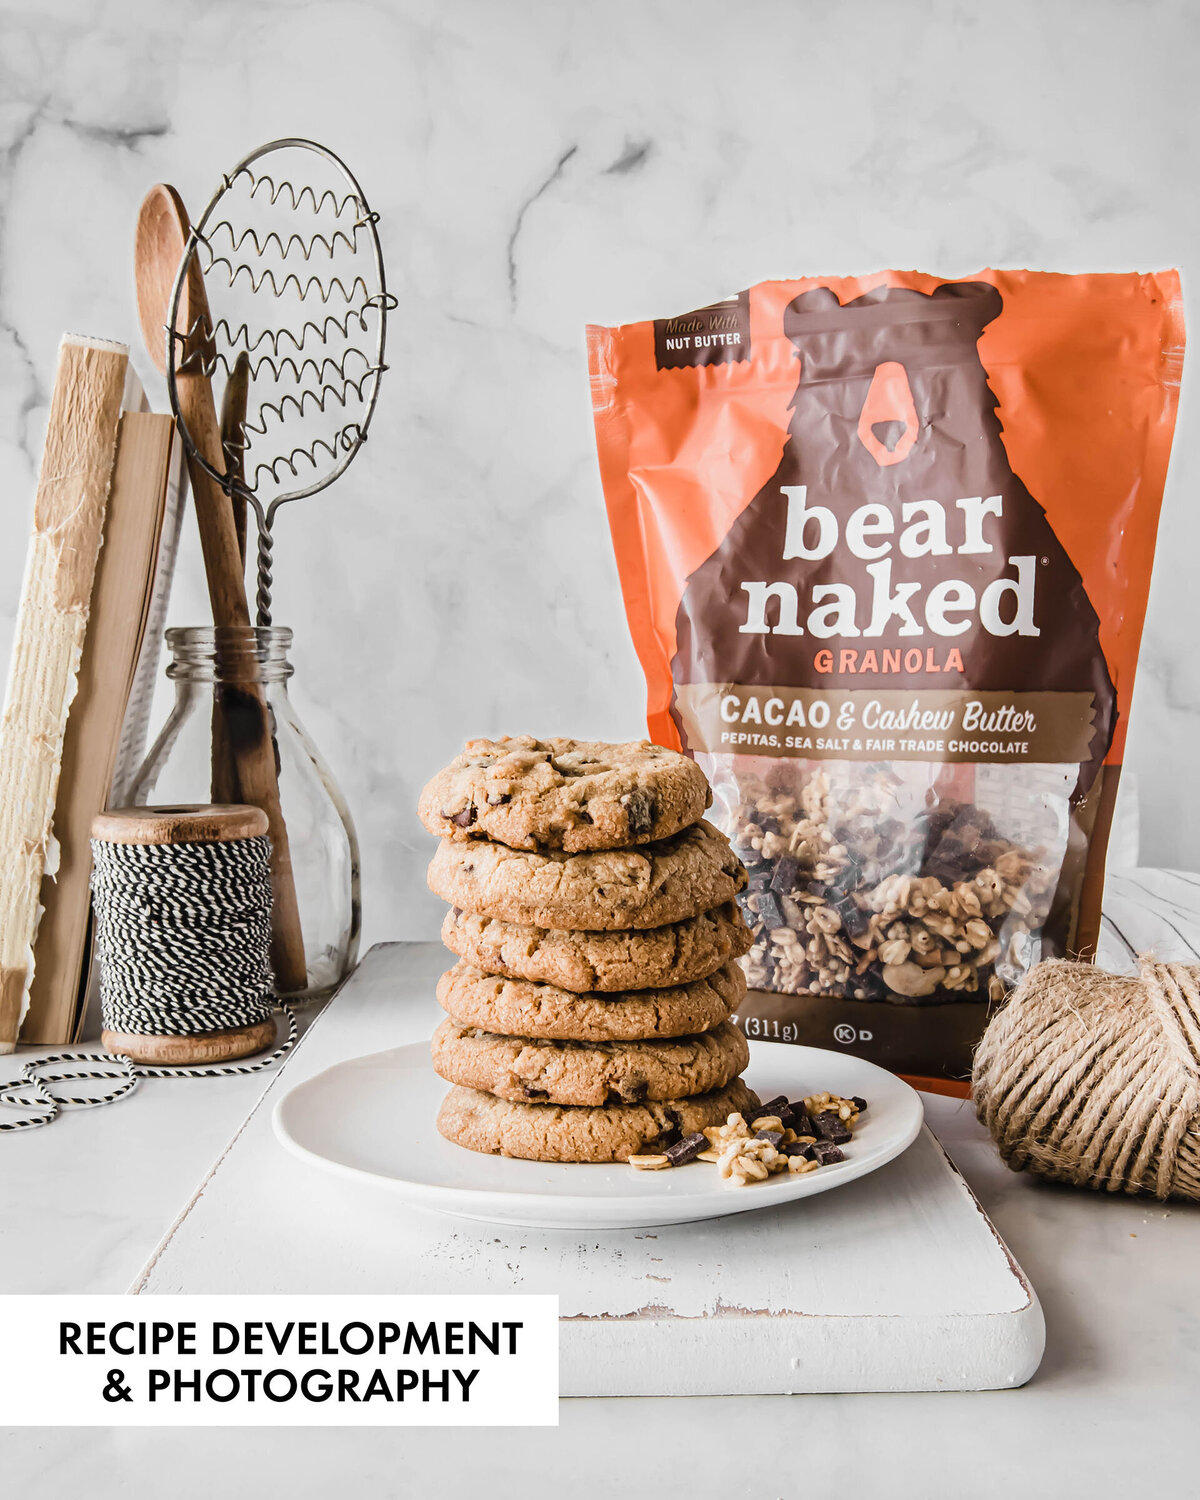 Recipe development and food photography for major national brands by Nancy Ingersoll